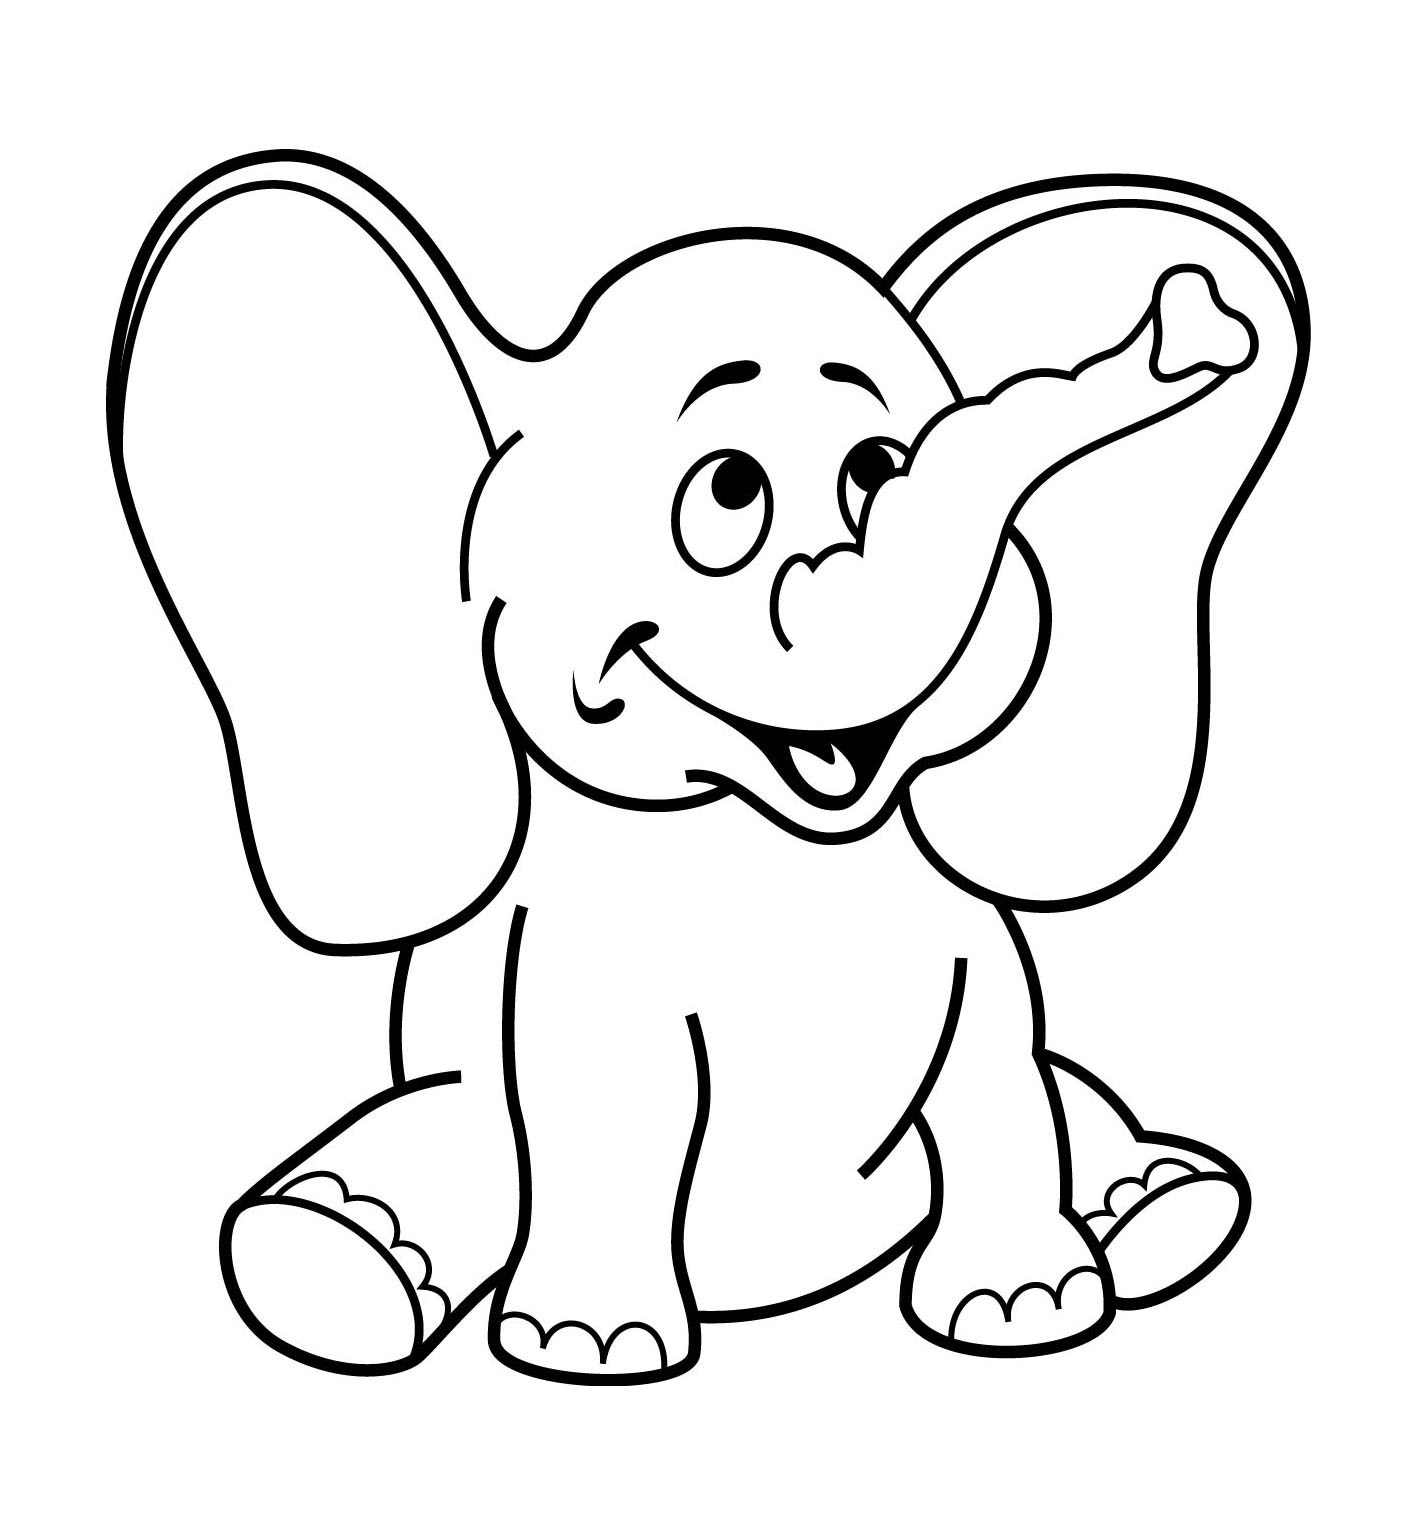 1417x1535 Coloring Pages For 3 5 Year Olds Coloring Pages For Kids And All